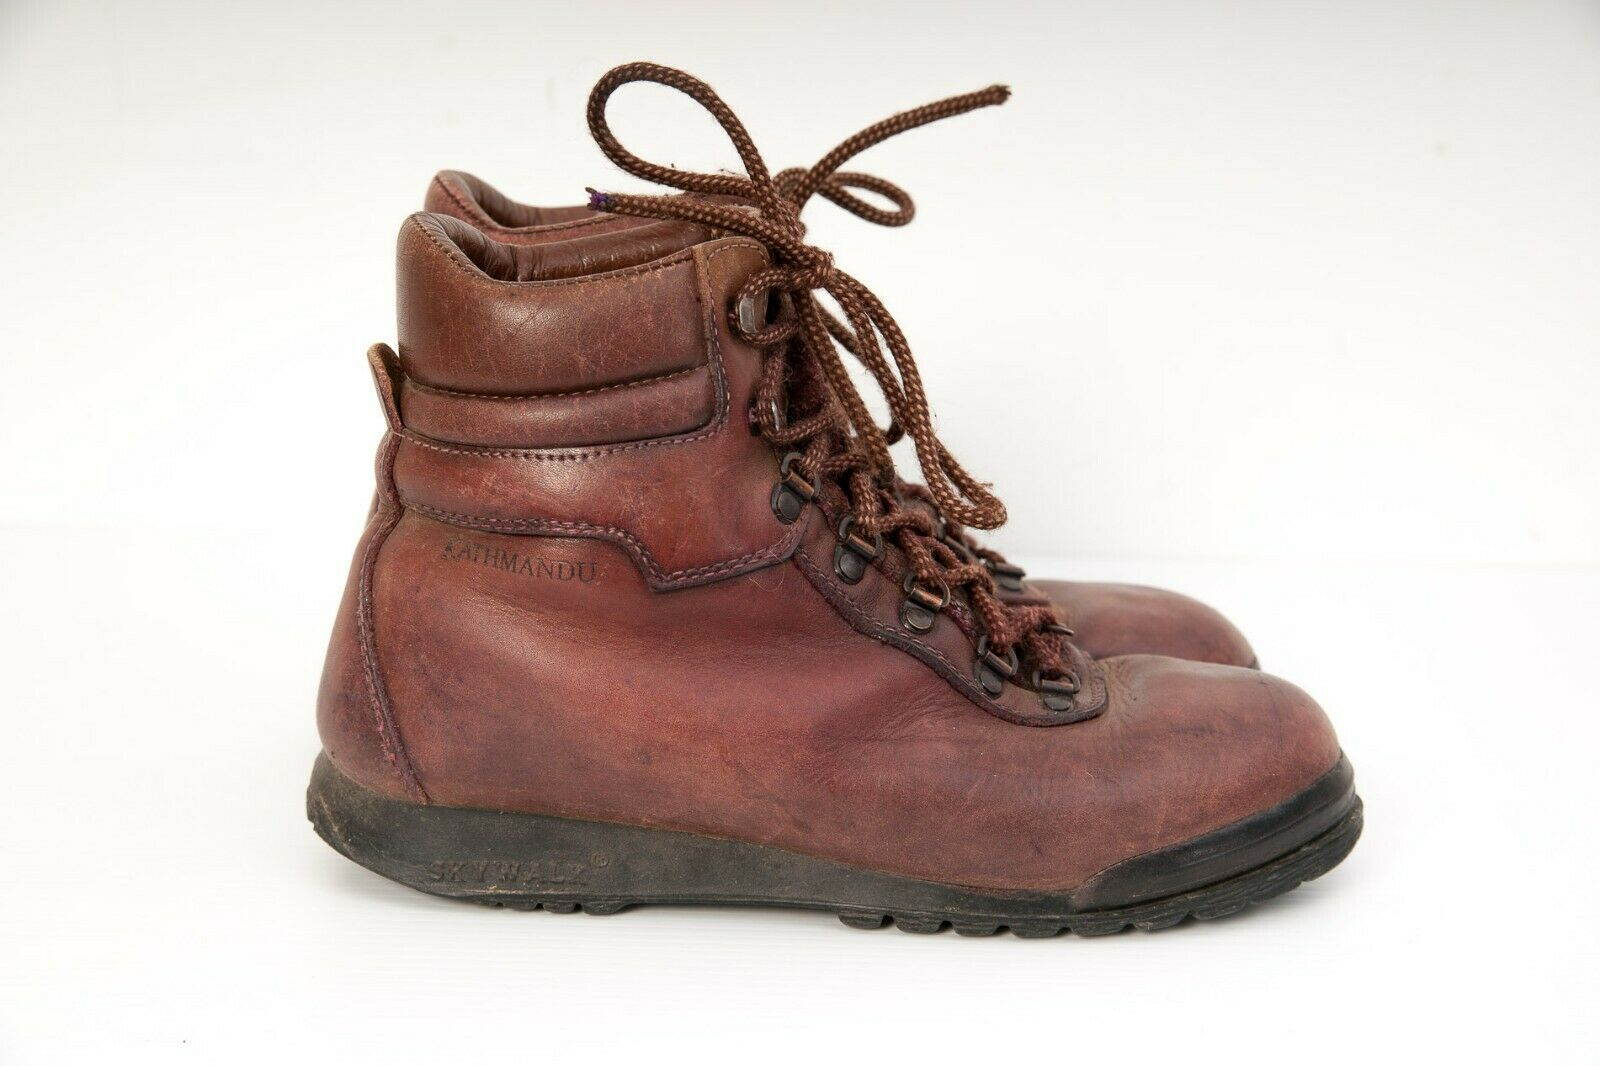 KATHMANDU Leather  SKYWALK Sympatex Hiking Walking Boots Size Brown ITALY  clients first reputation first